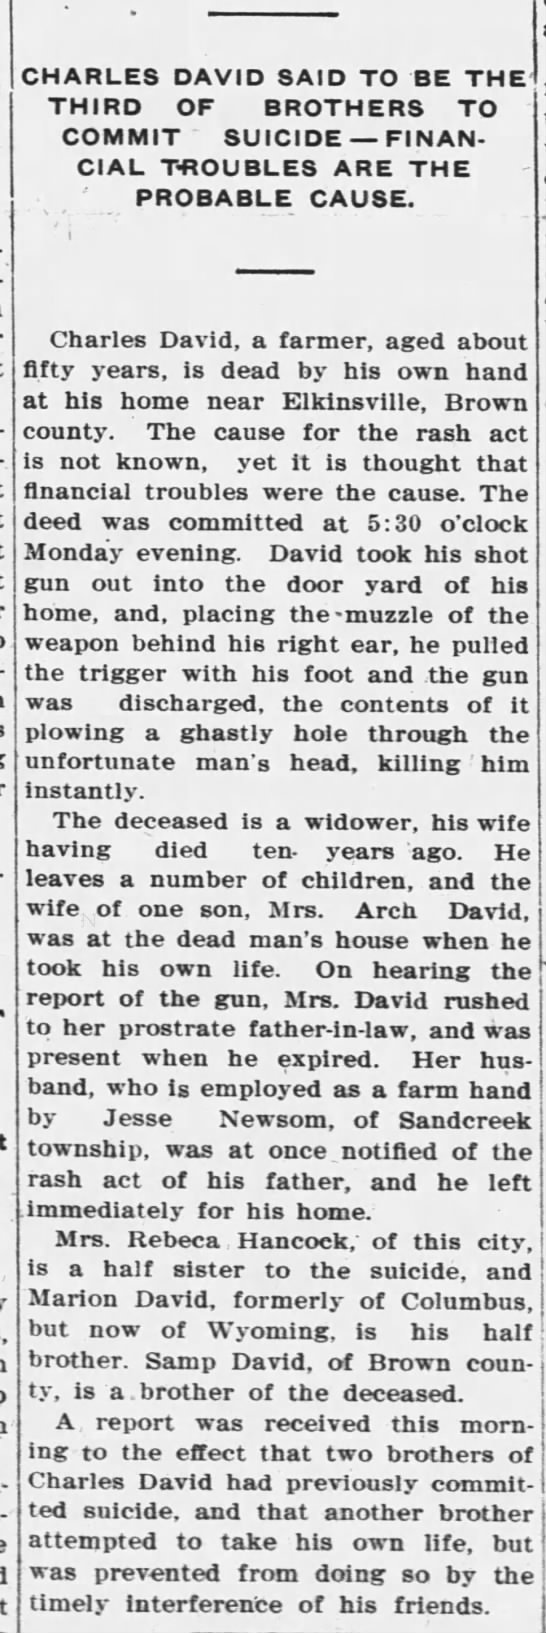 The Republic (Columbus, Indiana Tuesday 30 July 1907 page 1 - Scotts-burg CHARLES DAVID SAID TO BE THE THIRD...